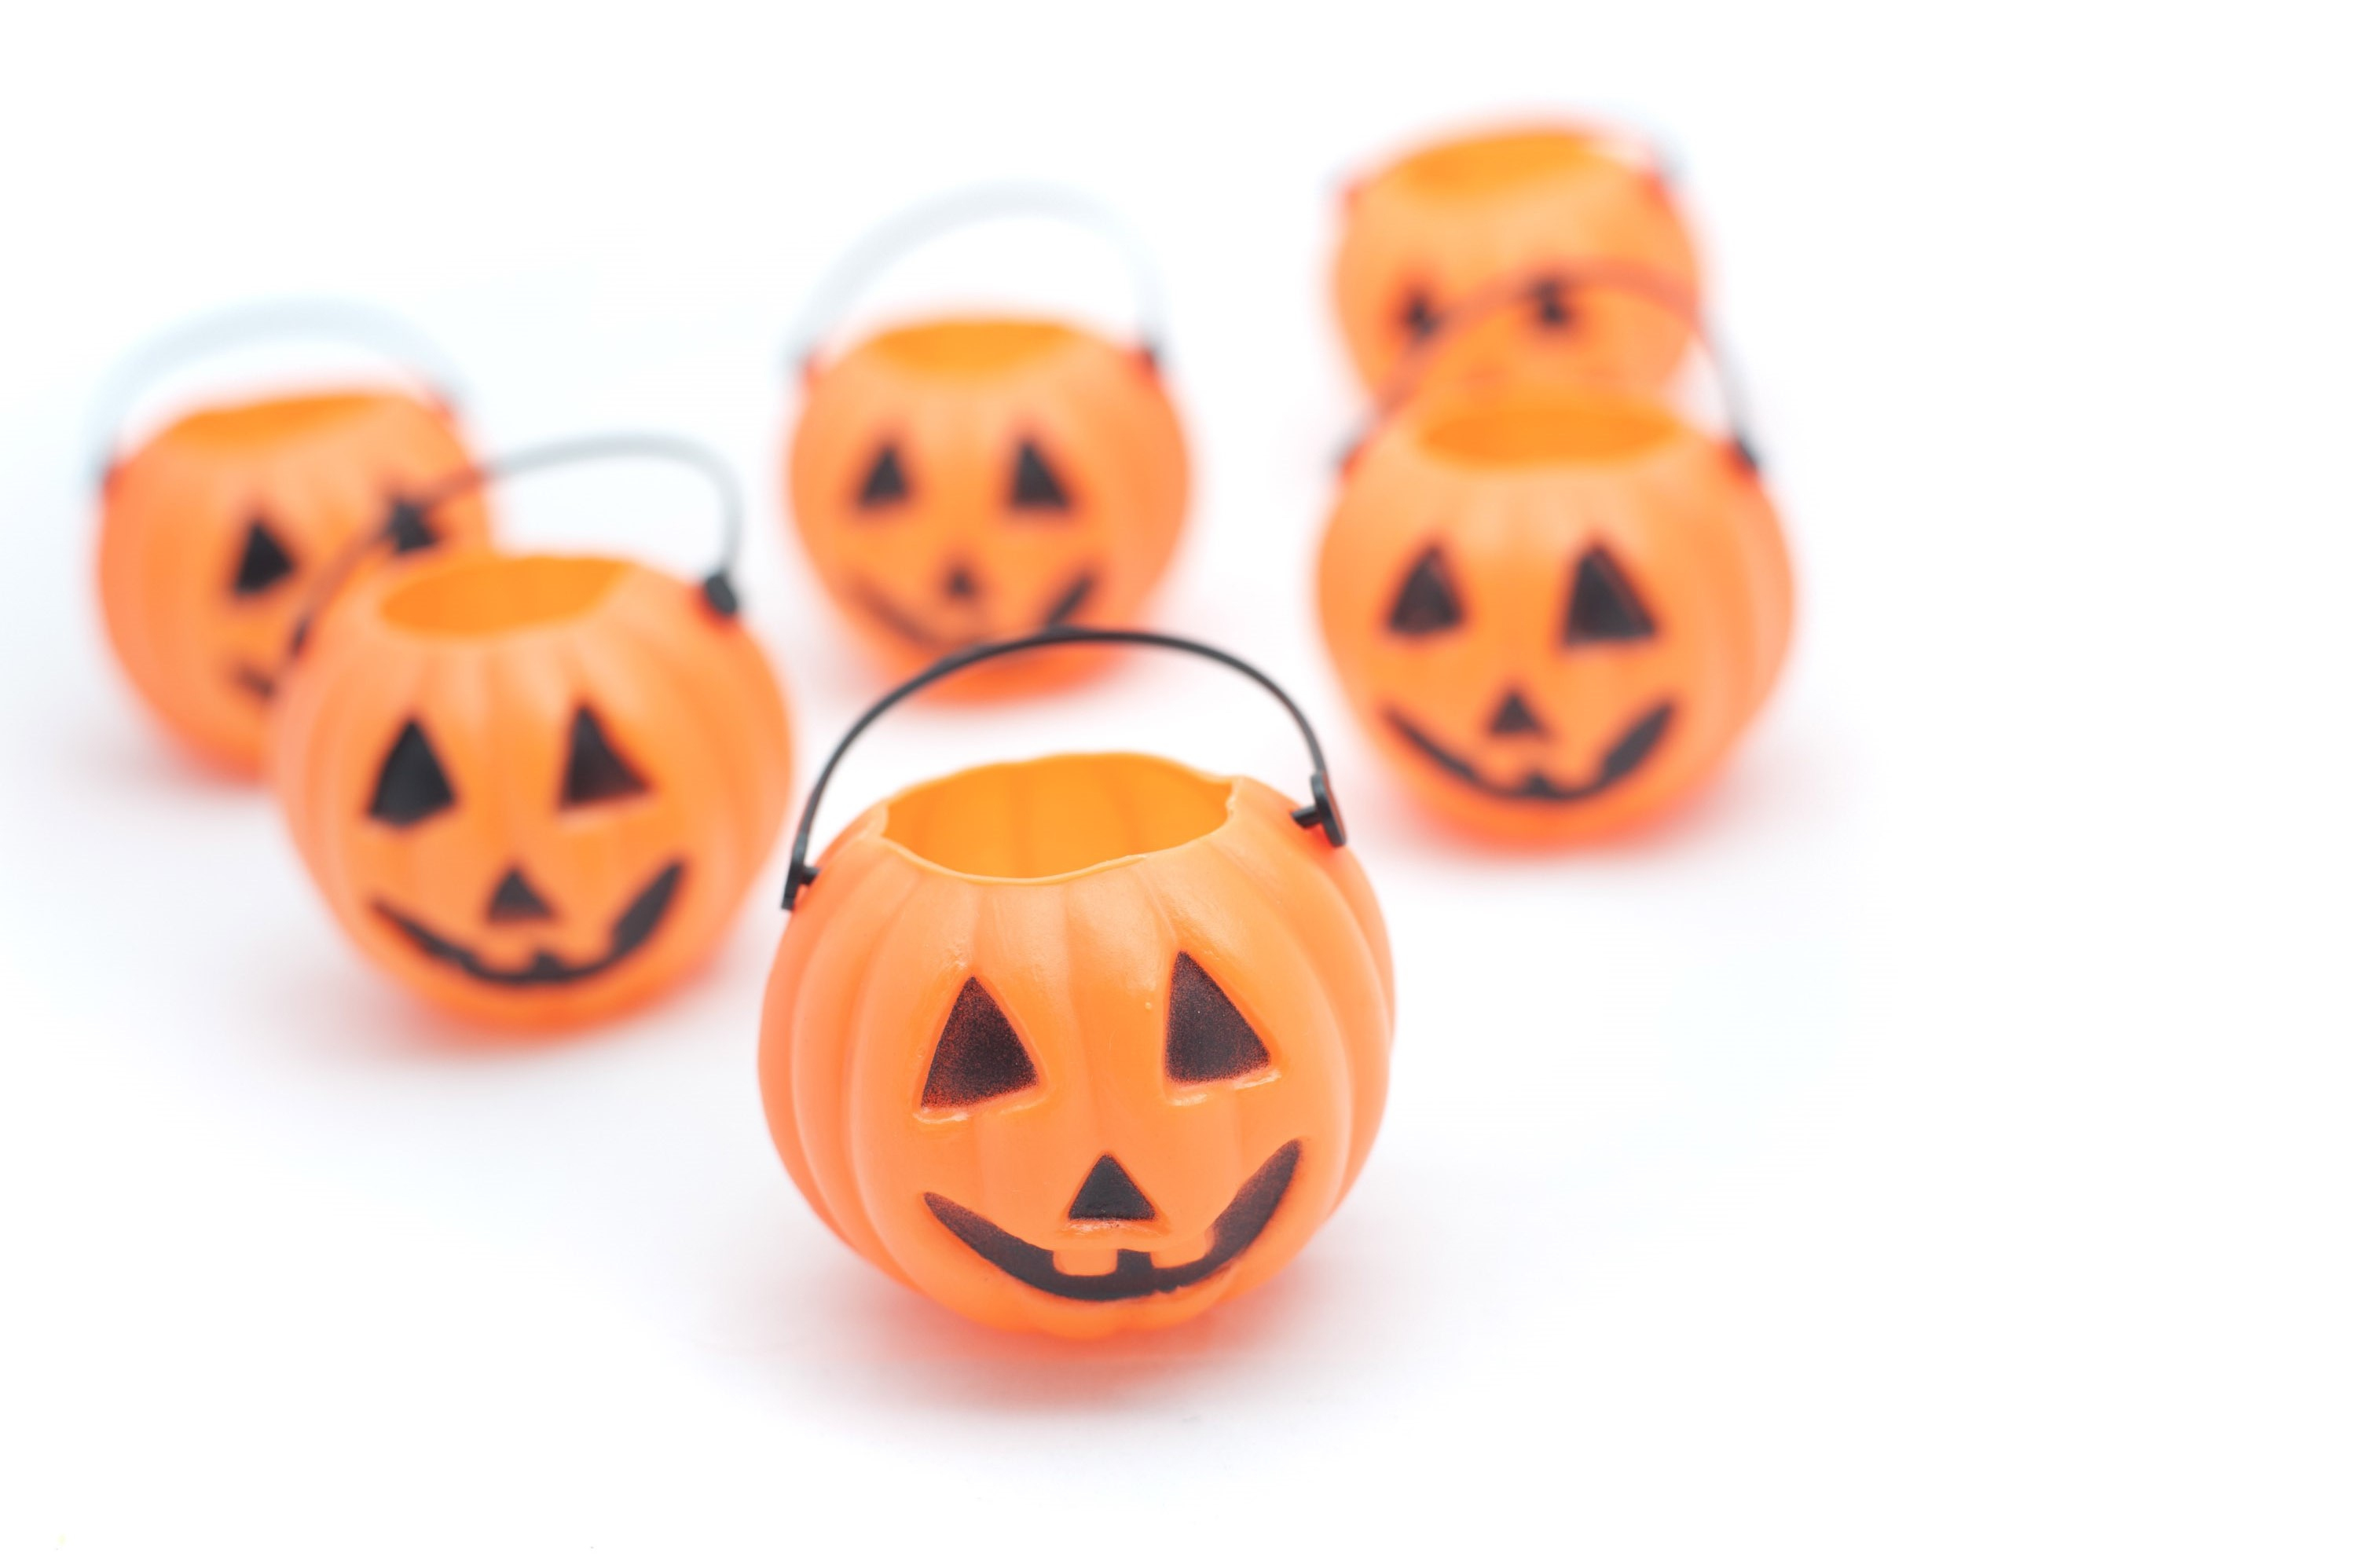 Group of Halloween decorations in the form of ceramic jack o lanterns or orange pumpkins wih scary faces over a white background